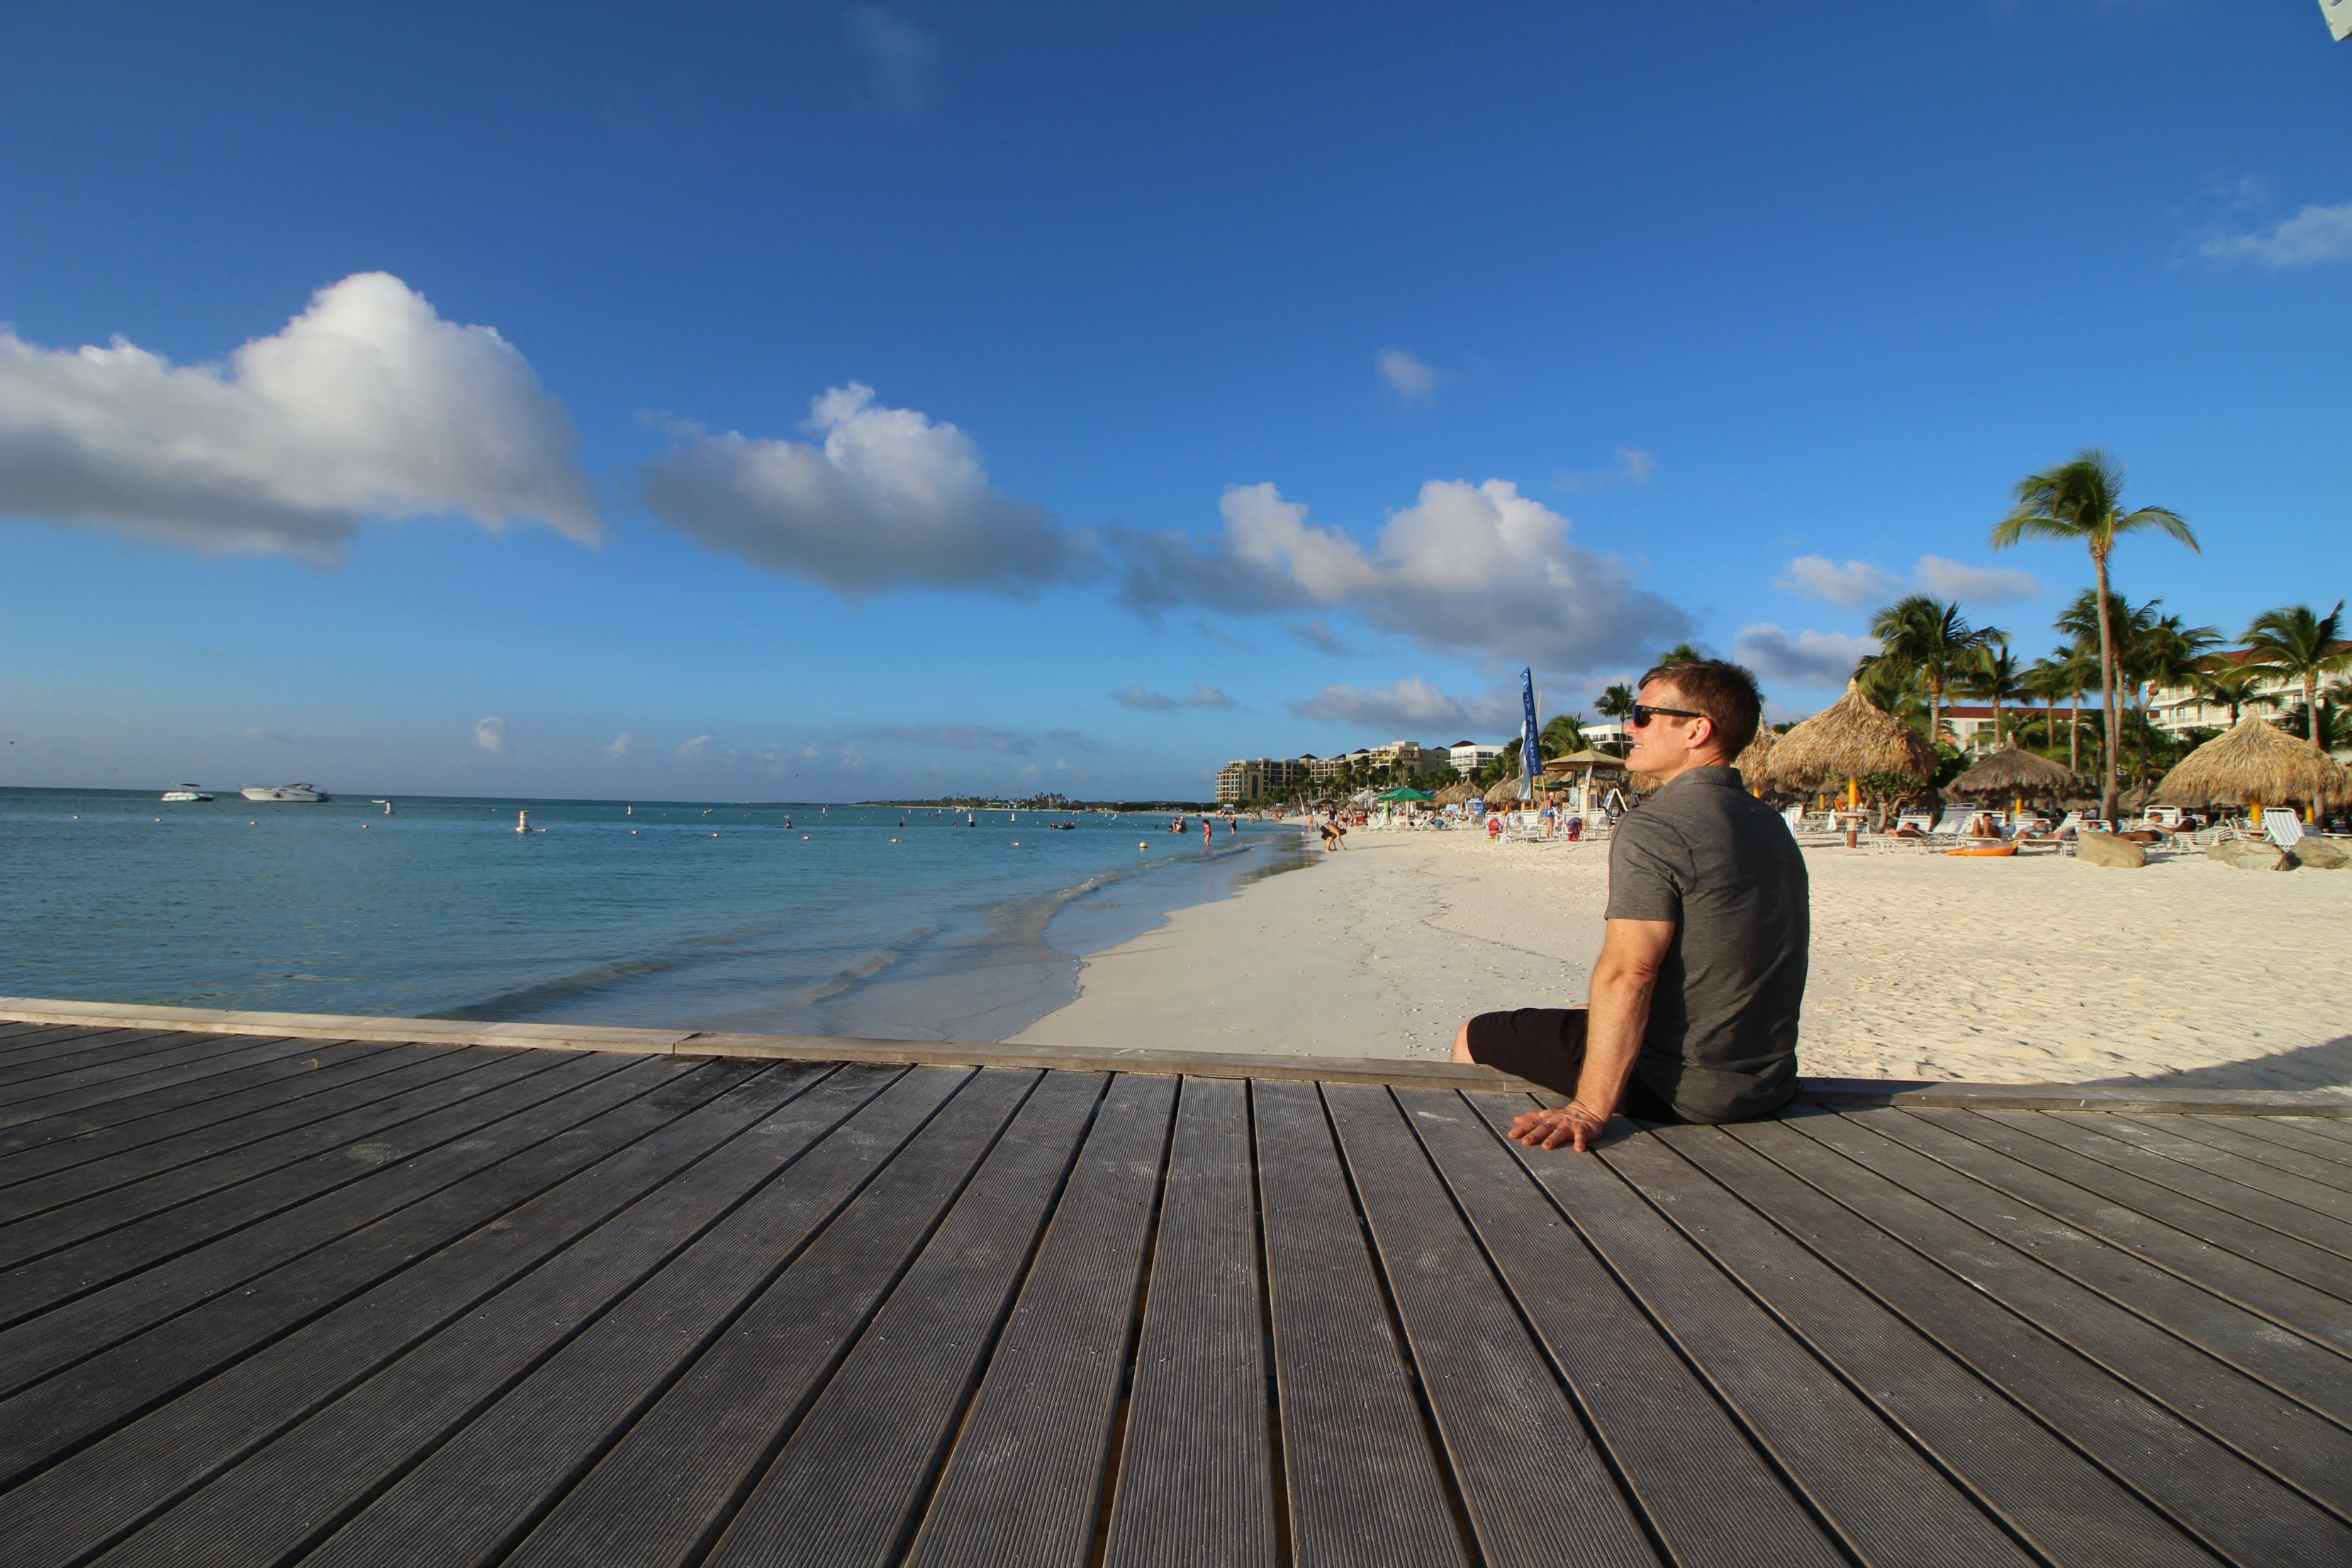 48 Hours In Aruba- Our Only Couples Getaway